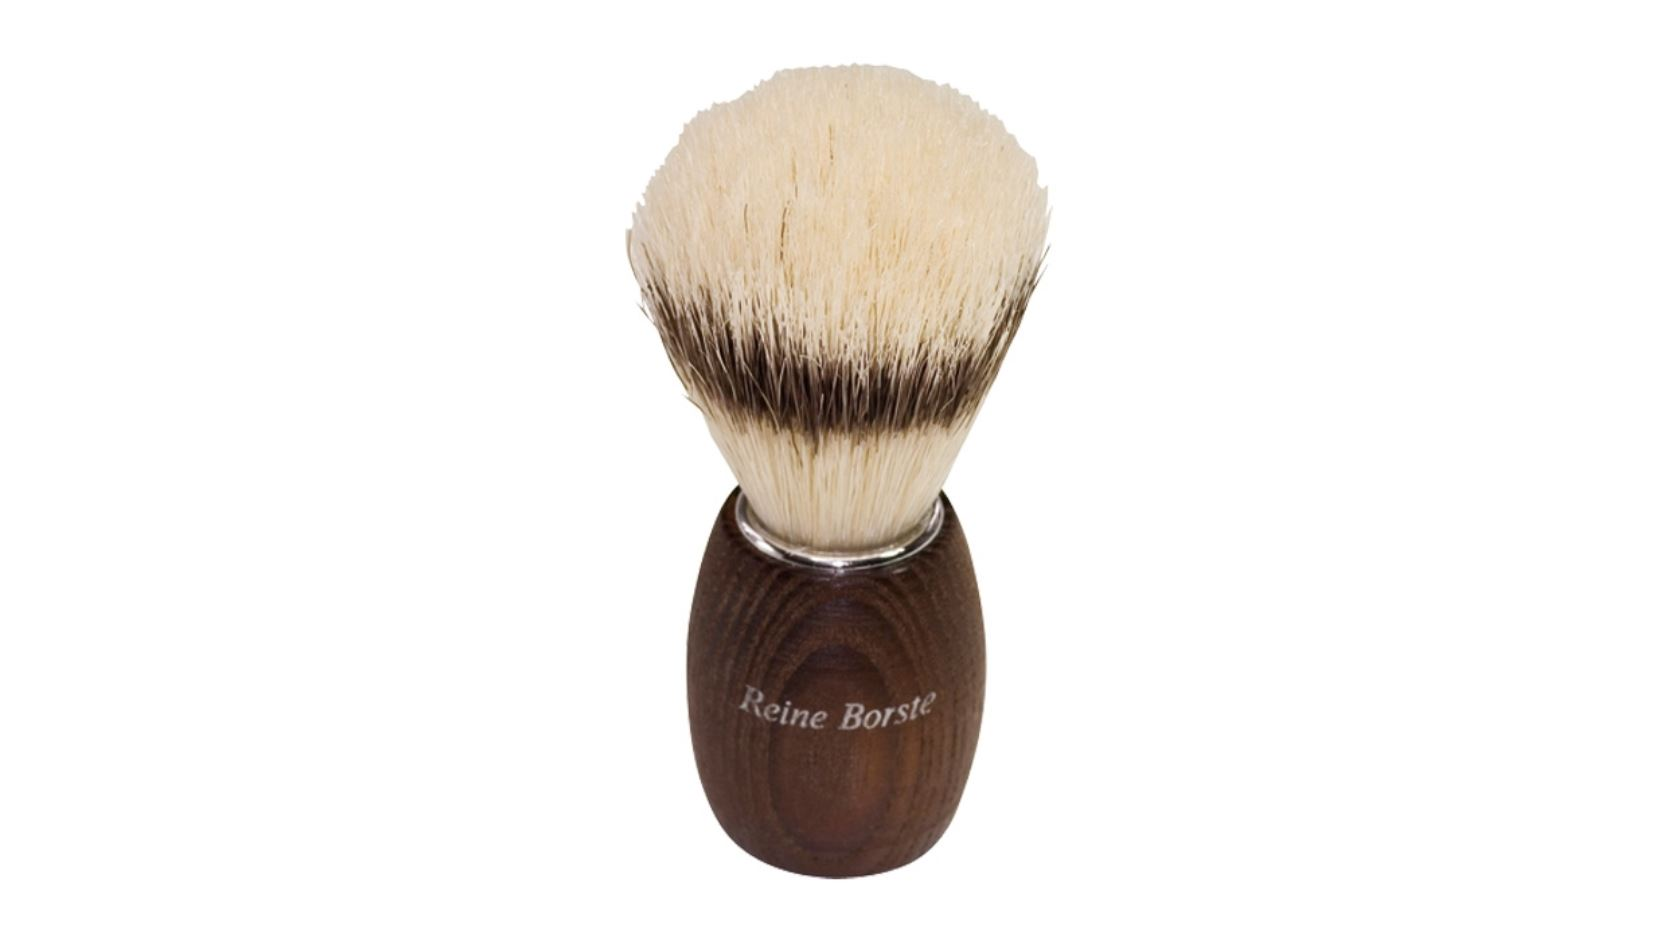 german shaving beard grooming brushes high quality natural materials ebay. Black Bedroom Furniture Sets. Home Design Ideas